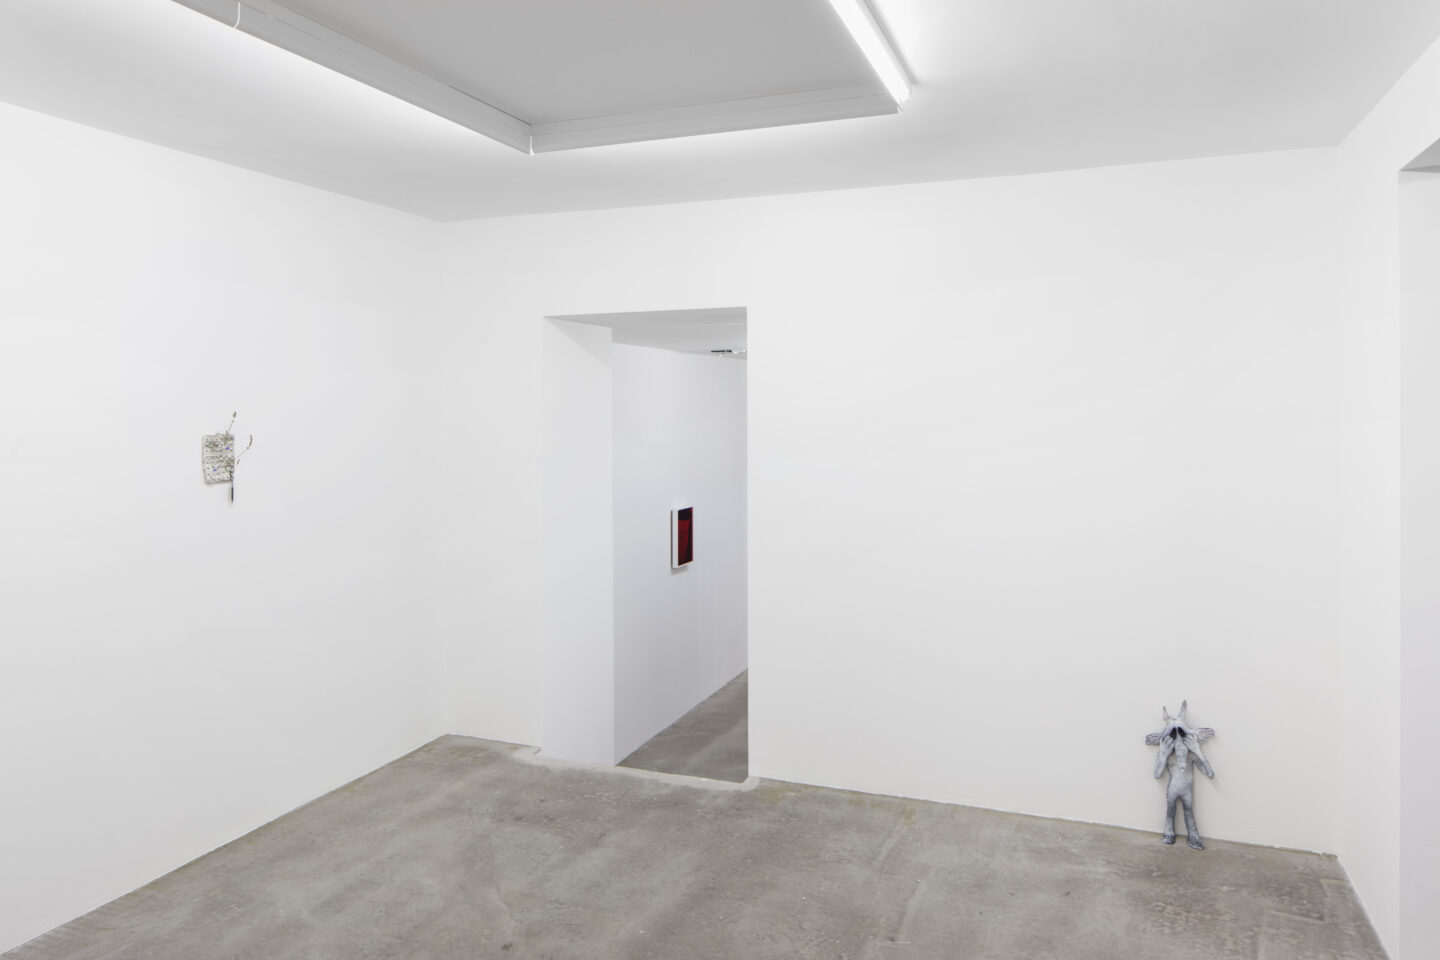 Exhibition View Cassidy Toner Soloshow «Unstable 4th Wall» at GALERIE PHILIPPZOLLINGER, Zurich, 2019 / Photo: Conradin Frei / Courtesy: the artist and GALERIE PHILIPP ZOLLINGER